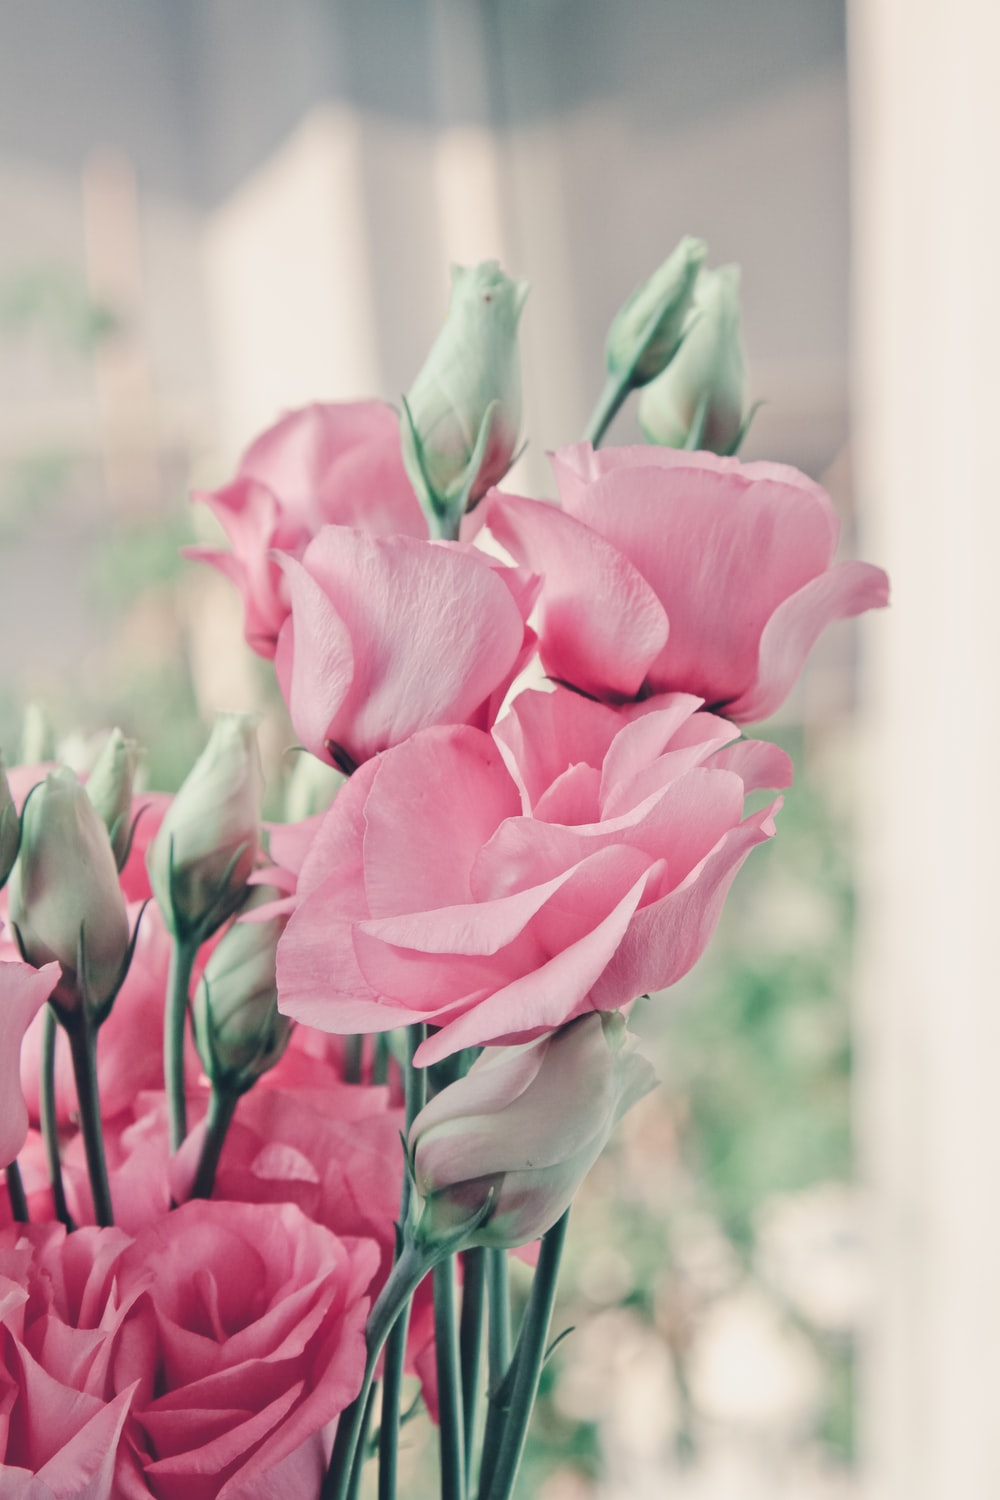 100 Rose Flower Pictures Download Free Images On Unsplash